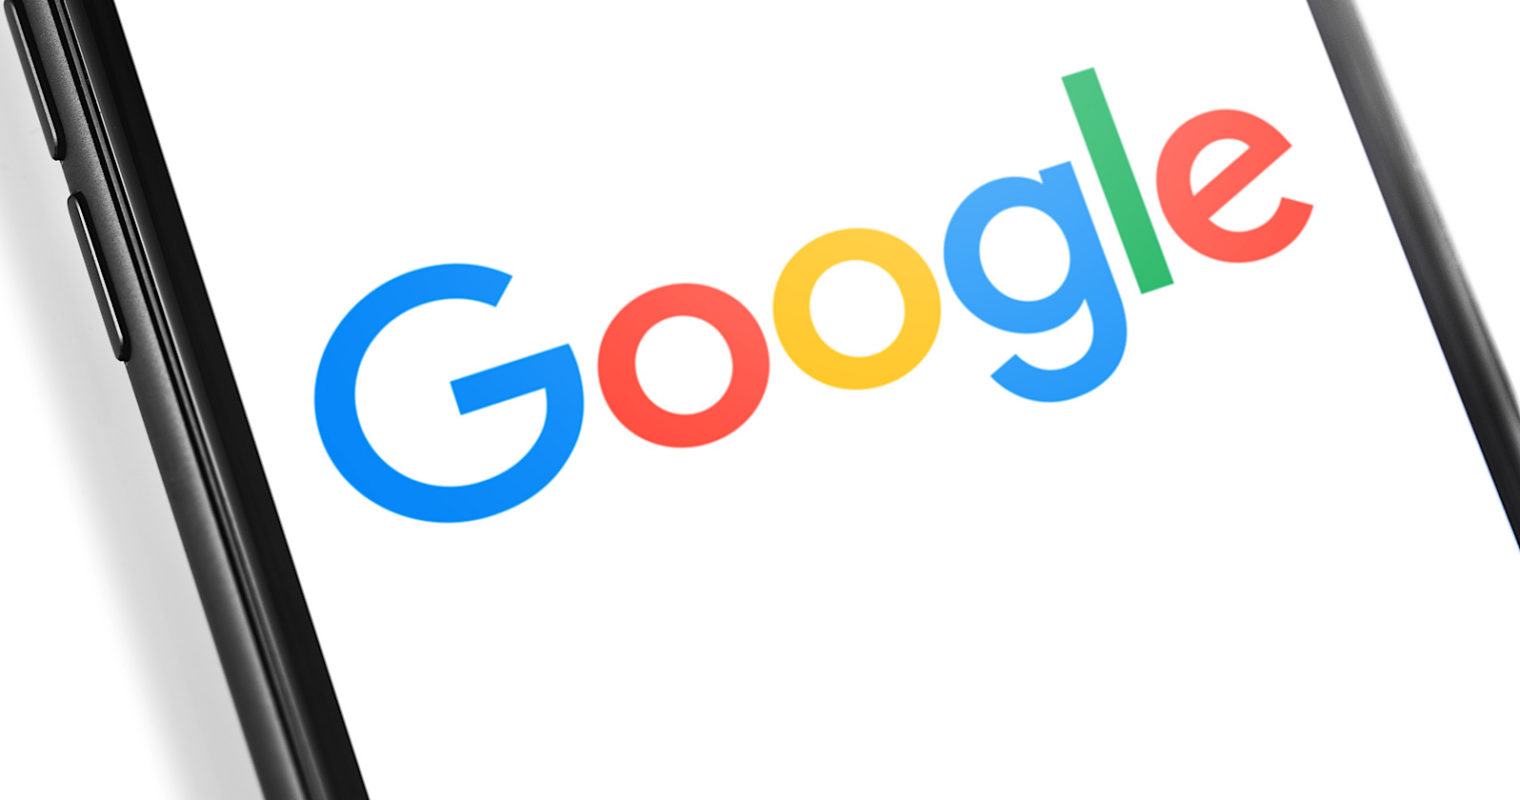 Google's New Customizable Search Snippets Begin Rolling Out This Week